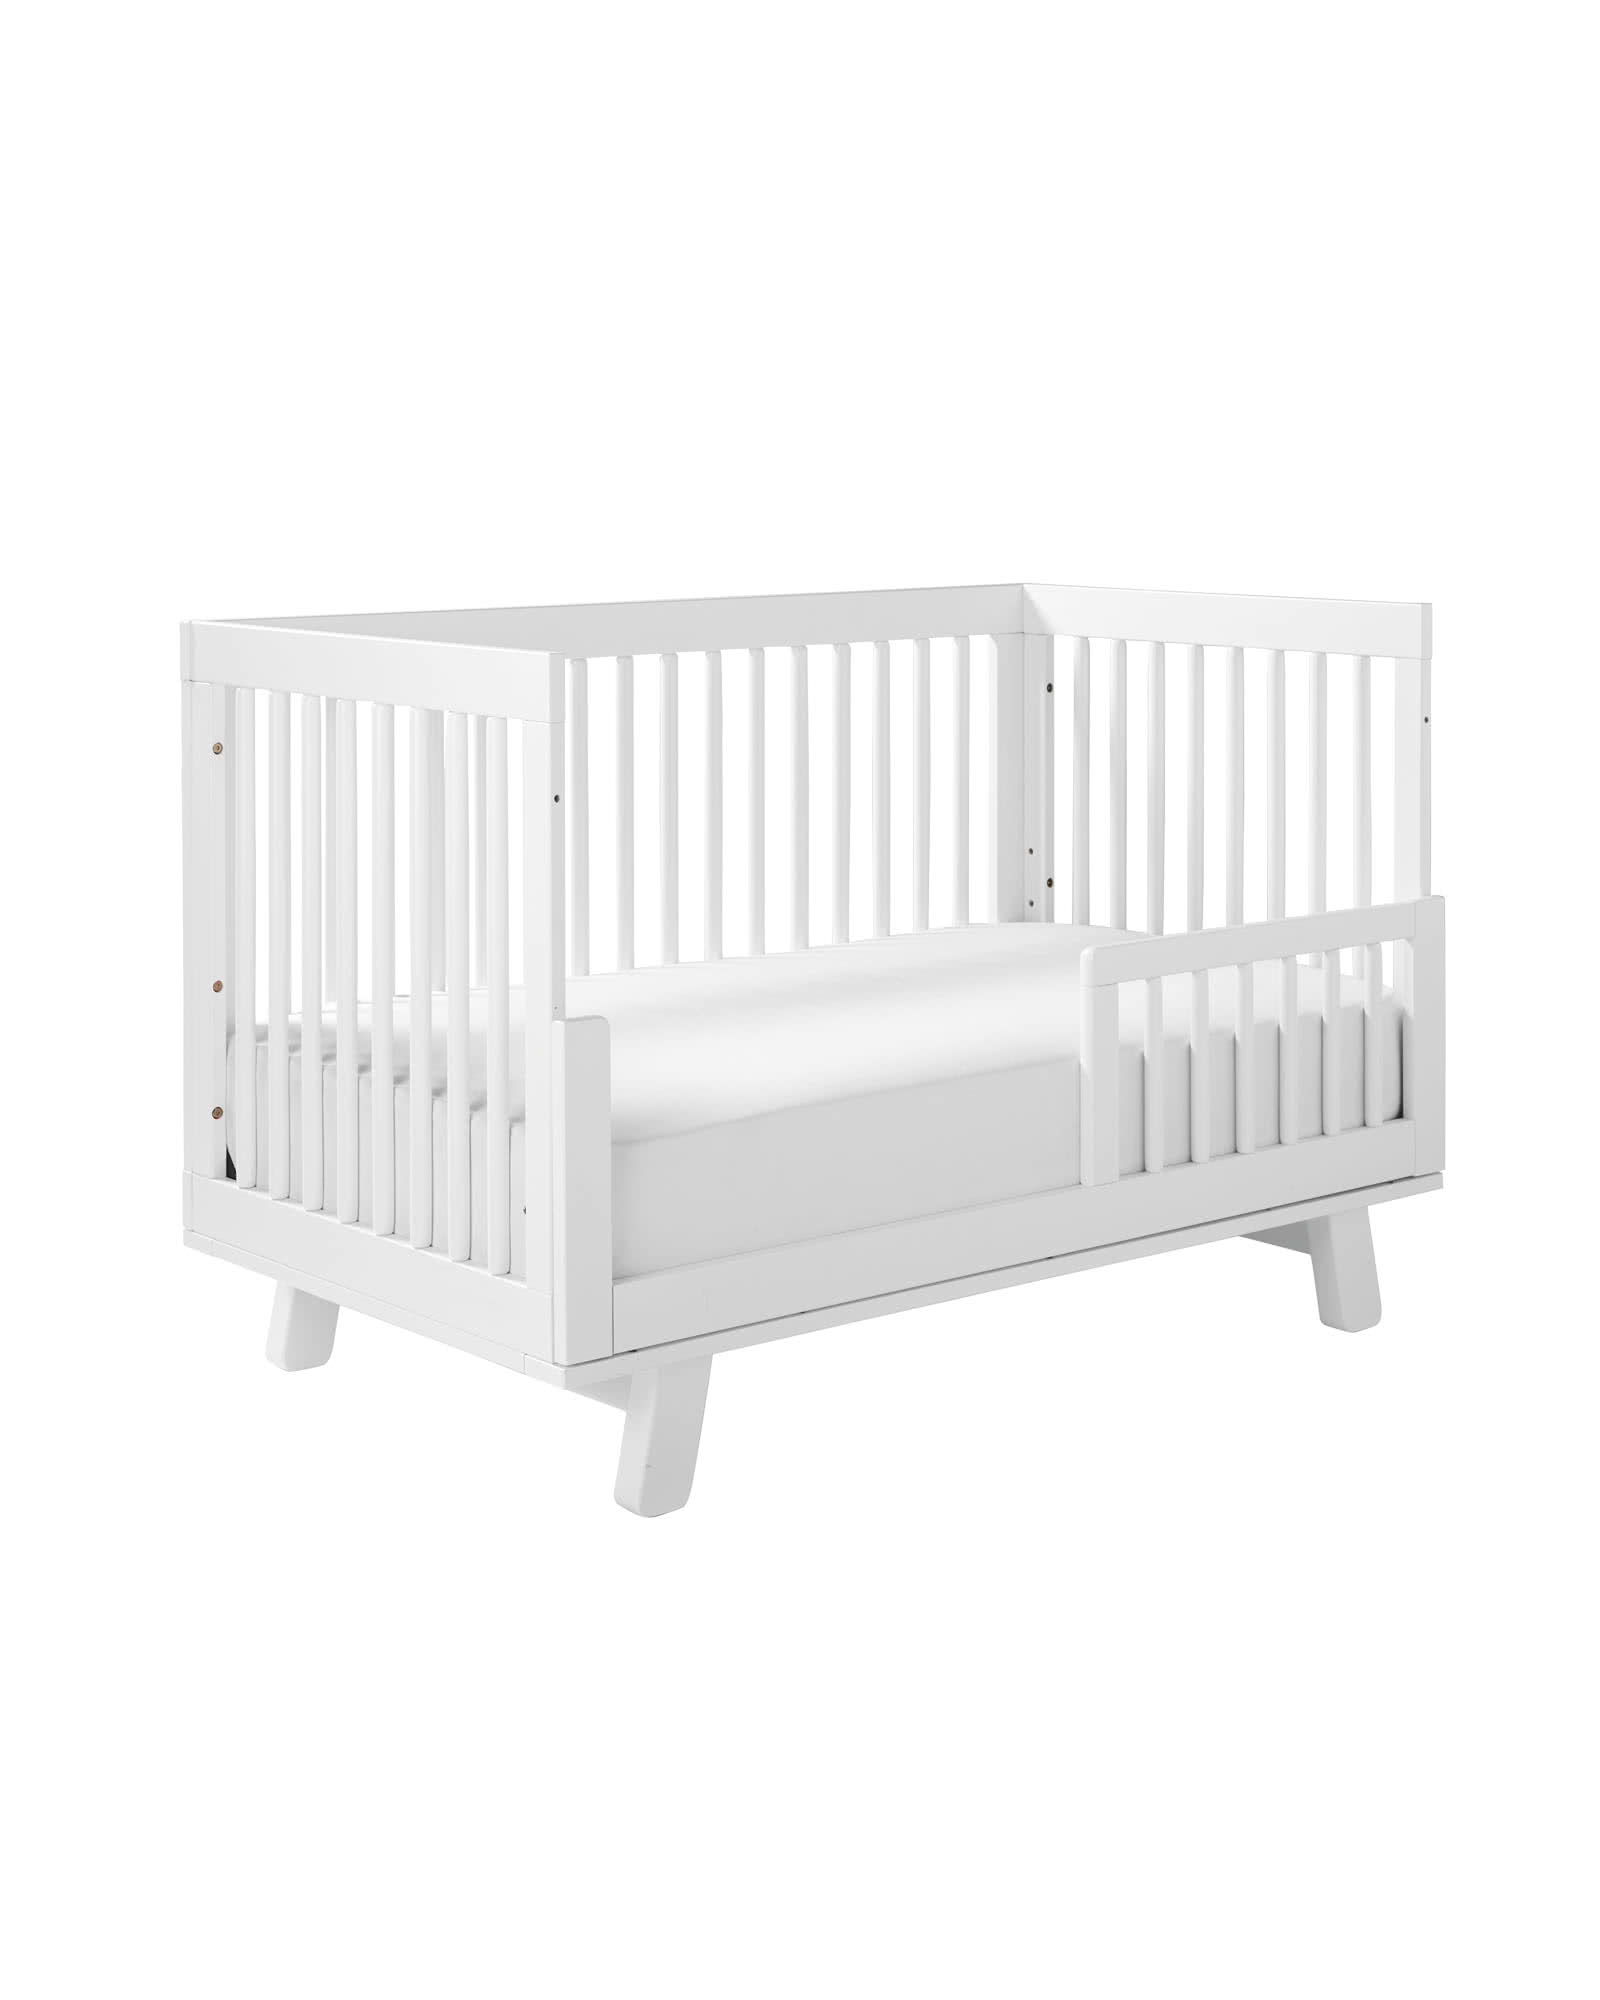 Hudson Convertible Crib, White